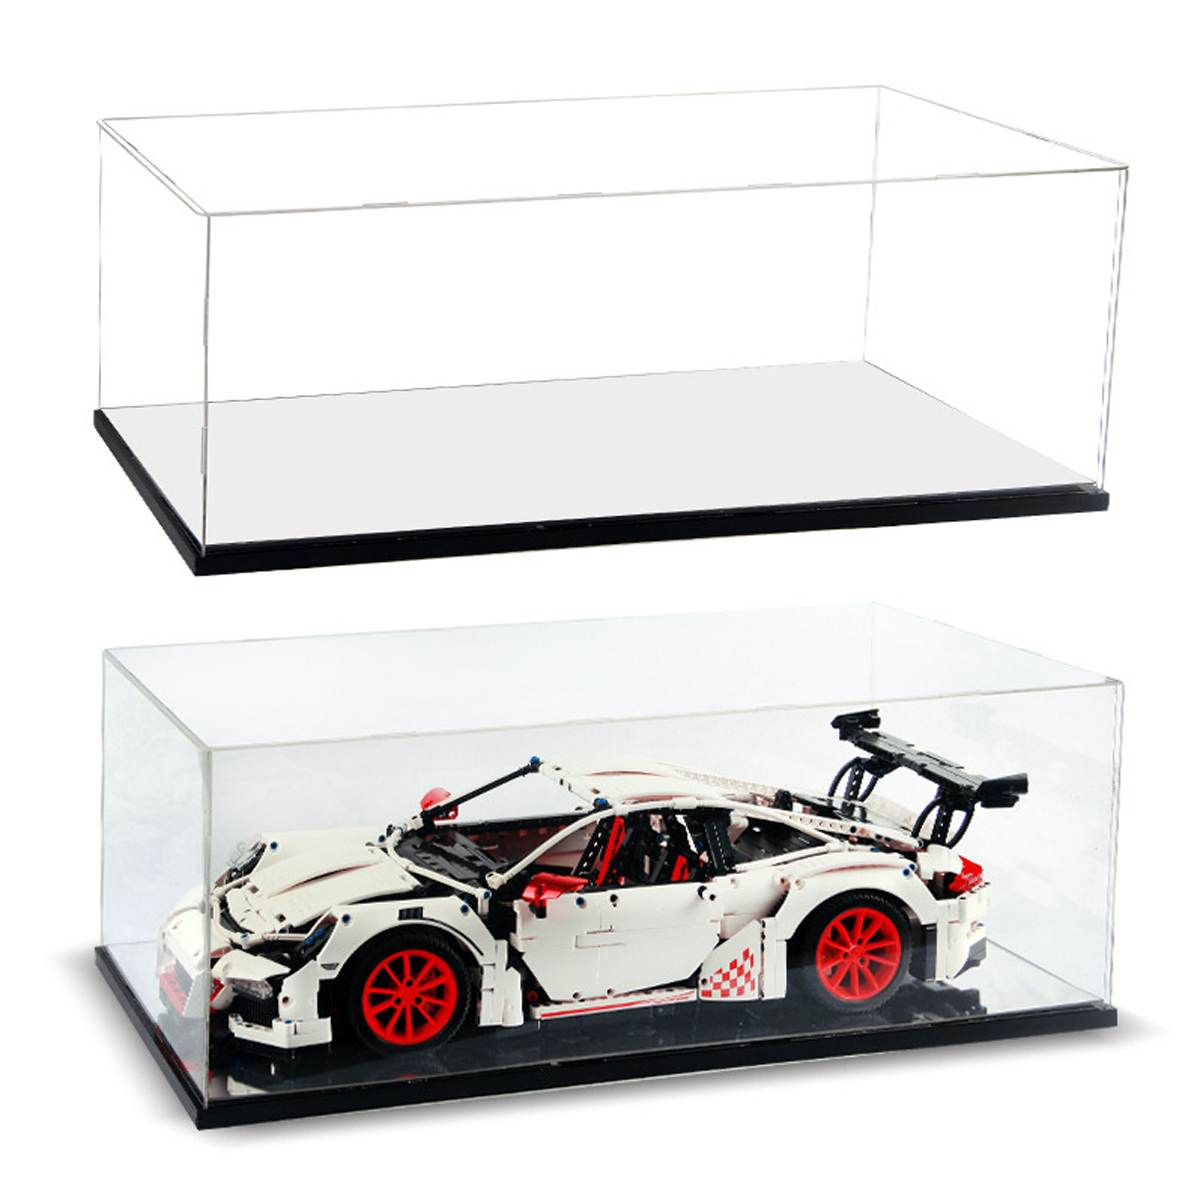 DIY Acrylic Display Case for <font><b>Lego</b></font> <font><b>42056</b></font> for Bugatti Chiron for Porsche 911 GT3 RS Technic Series Blocks ( Model not Included) image